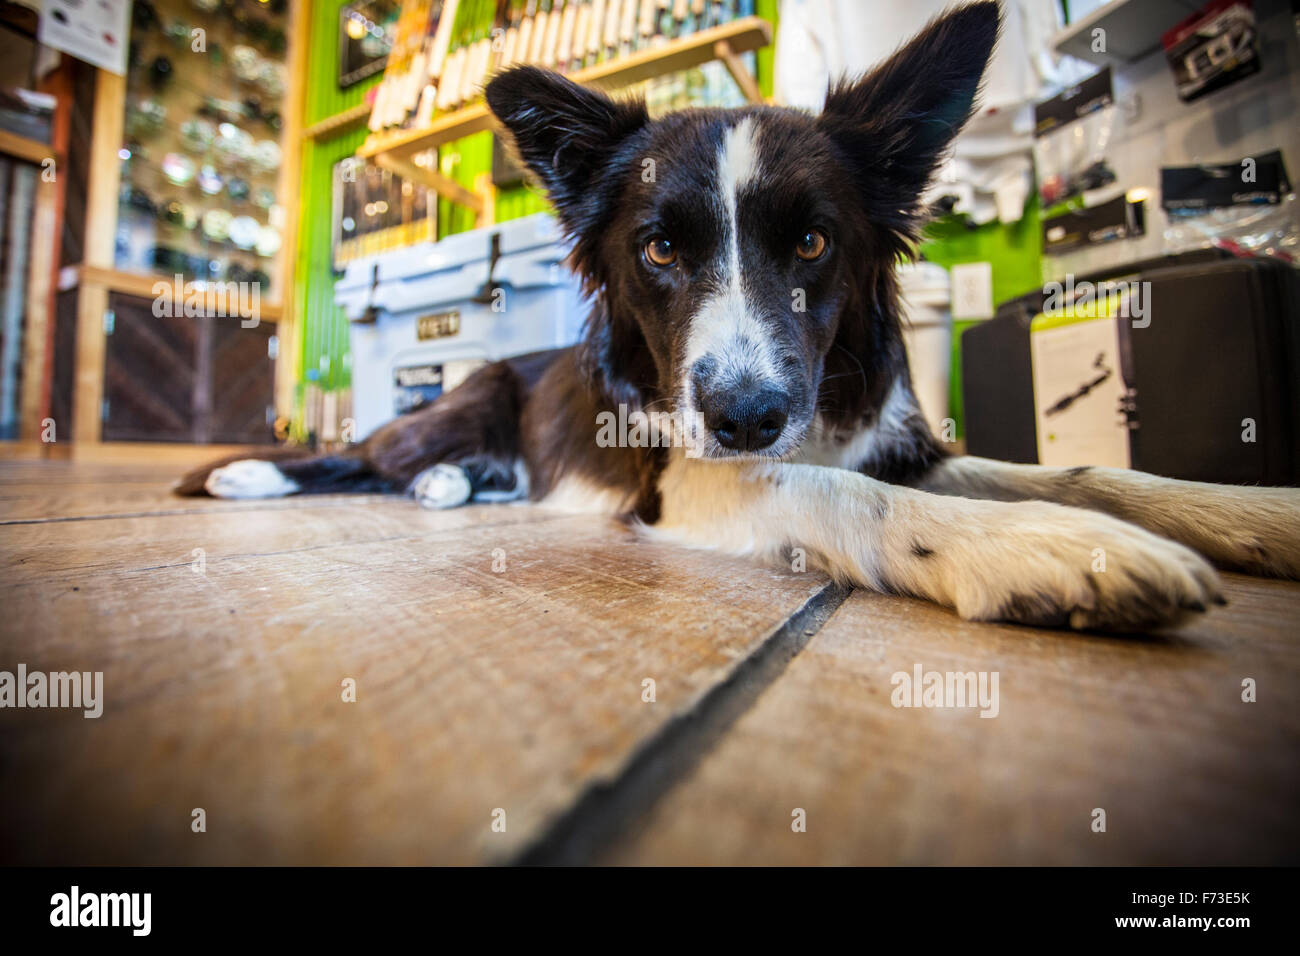 Marley the Border Collie shop dog on a wooden floor in a fly shop. - Stock Image